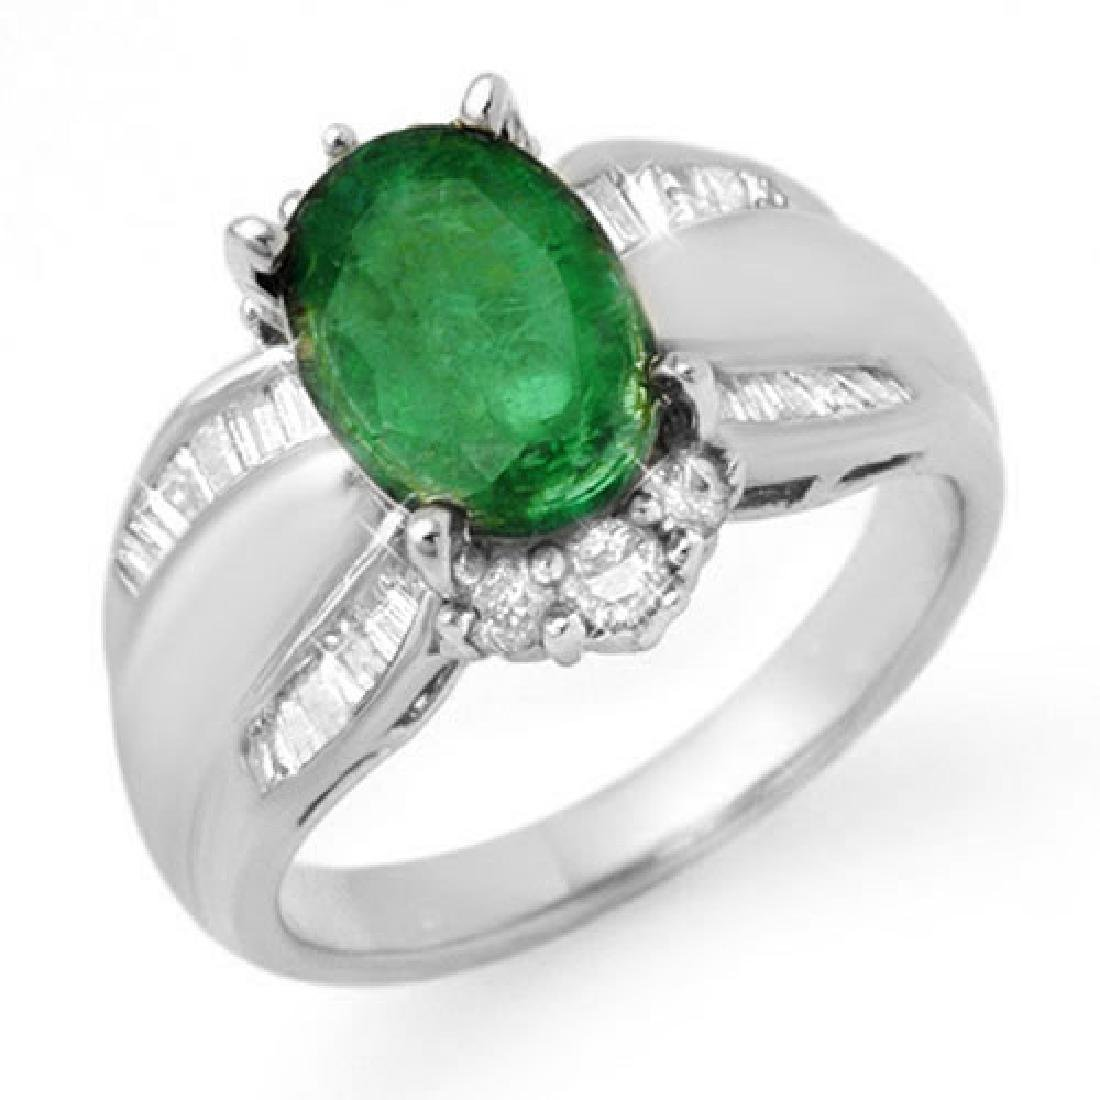 2.87 CTW Emerald & Diamond Ring 18K White Gold